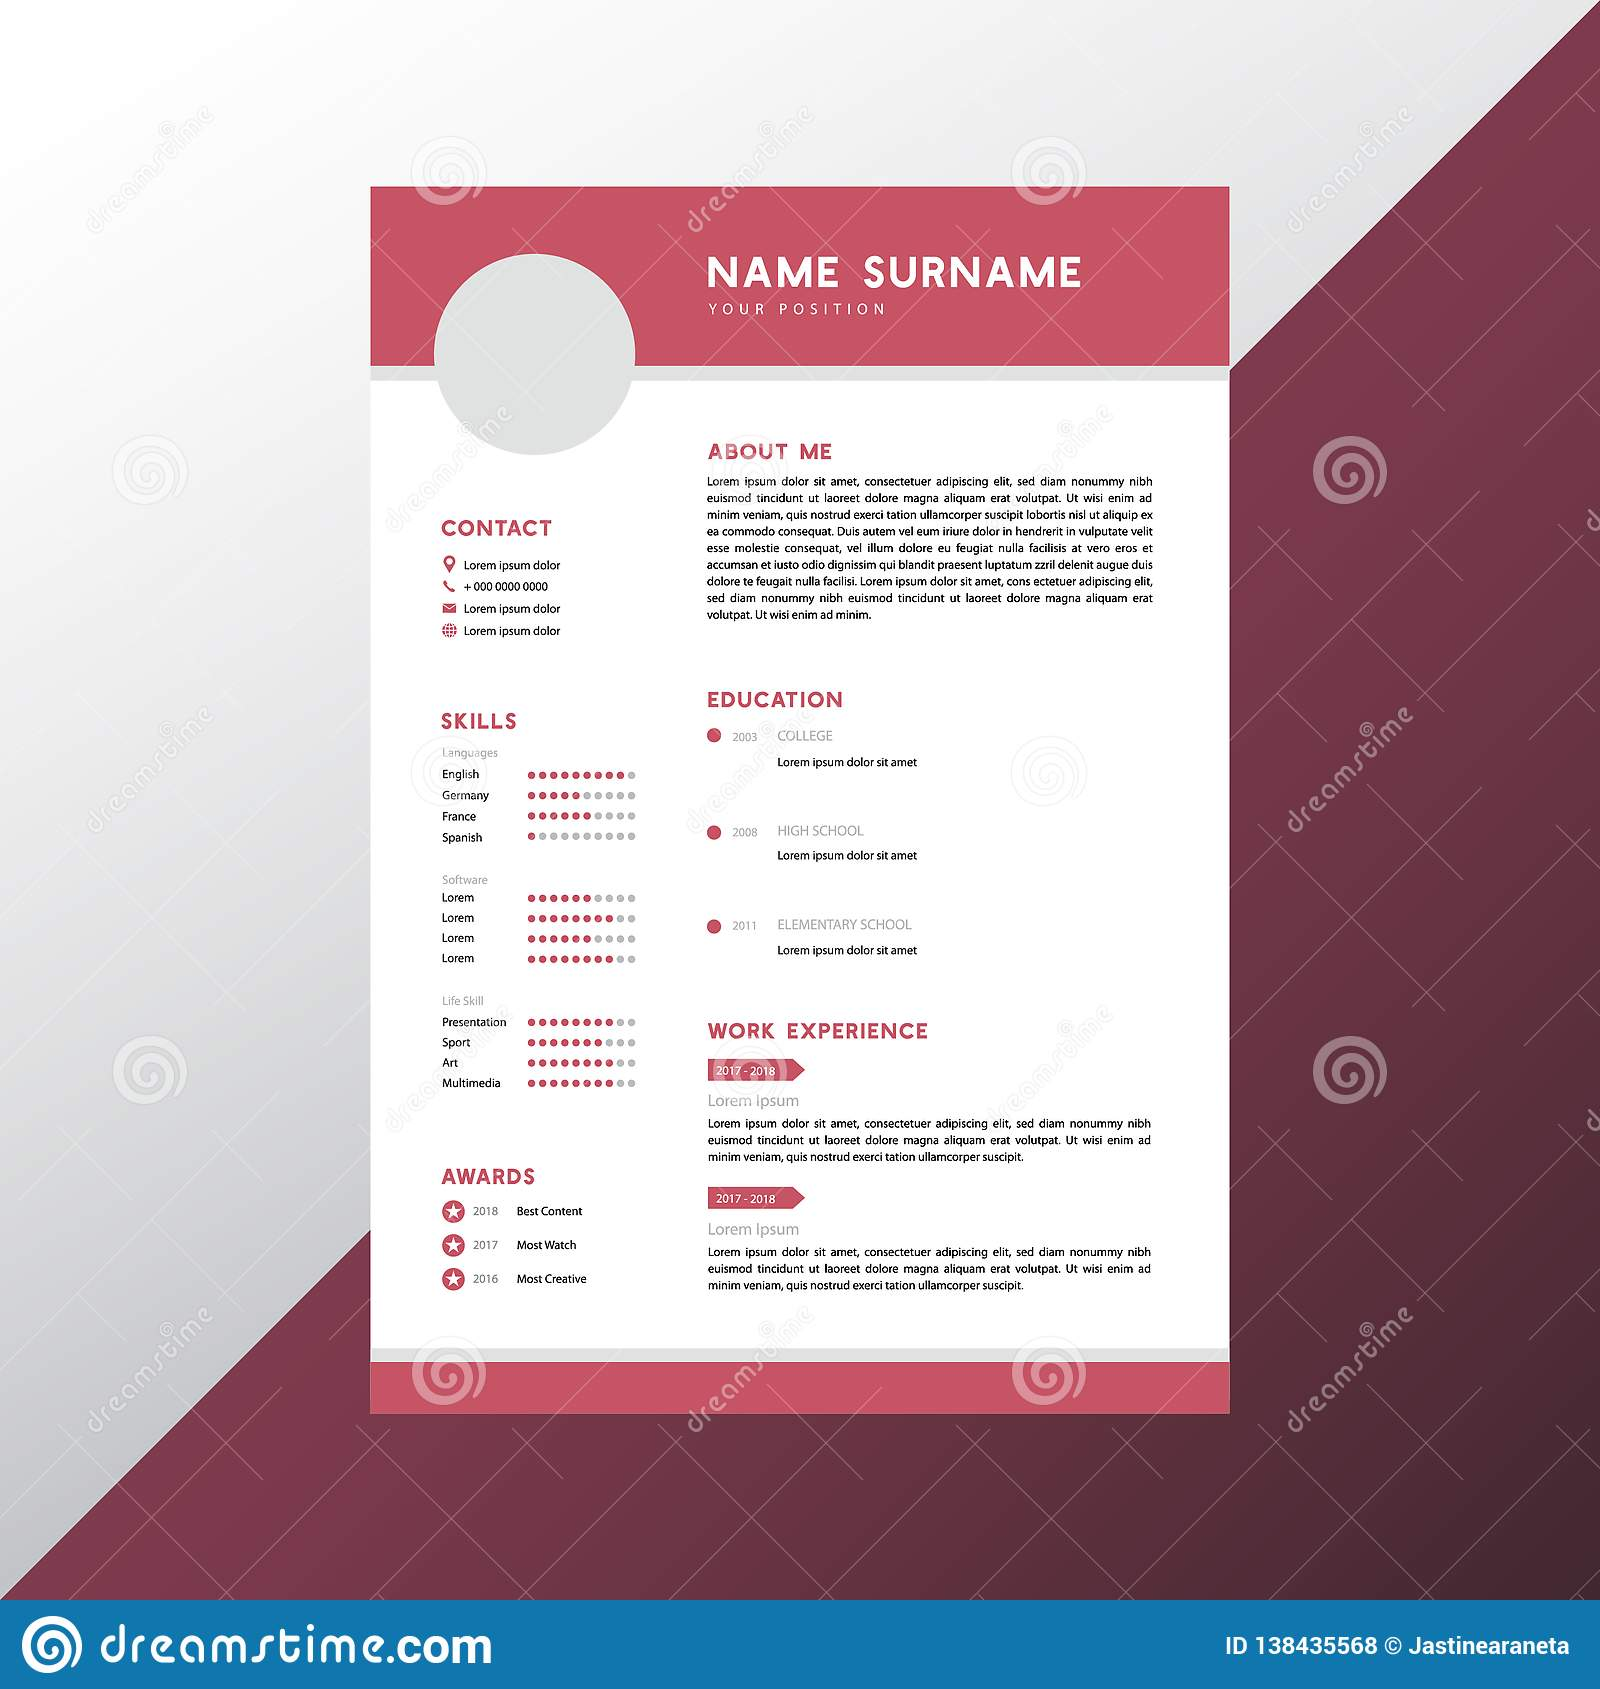 cv resume template photos free royalty stock from dreamstime pink simple modern design Resume Free Stock Photos Resume